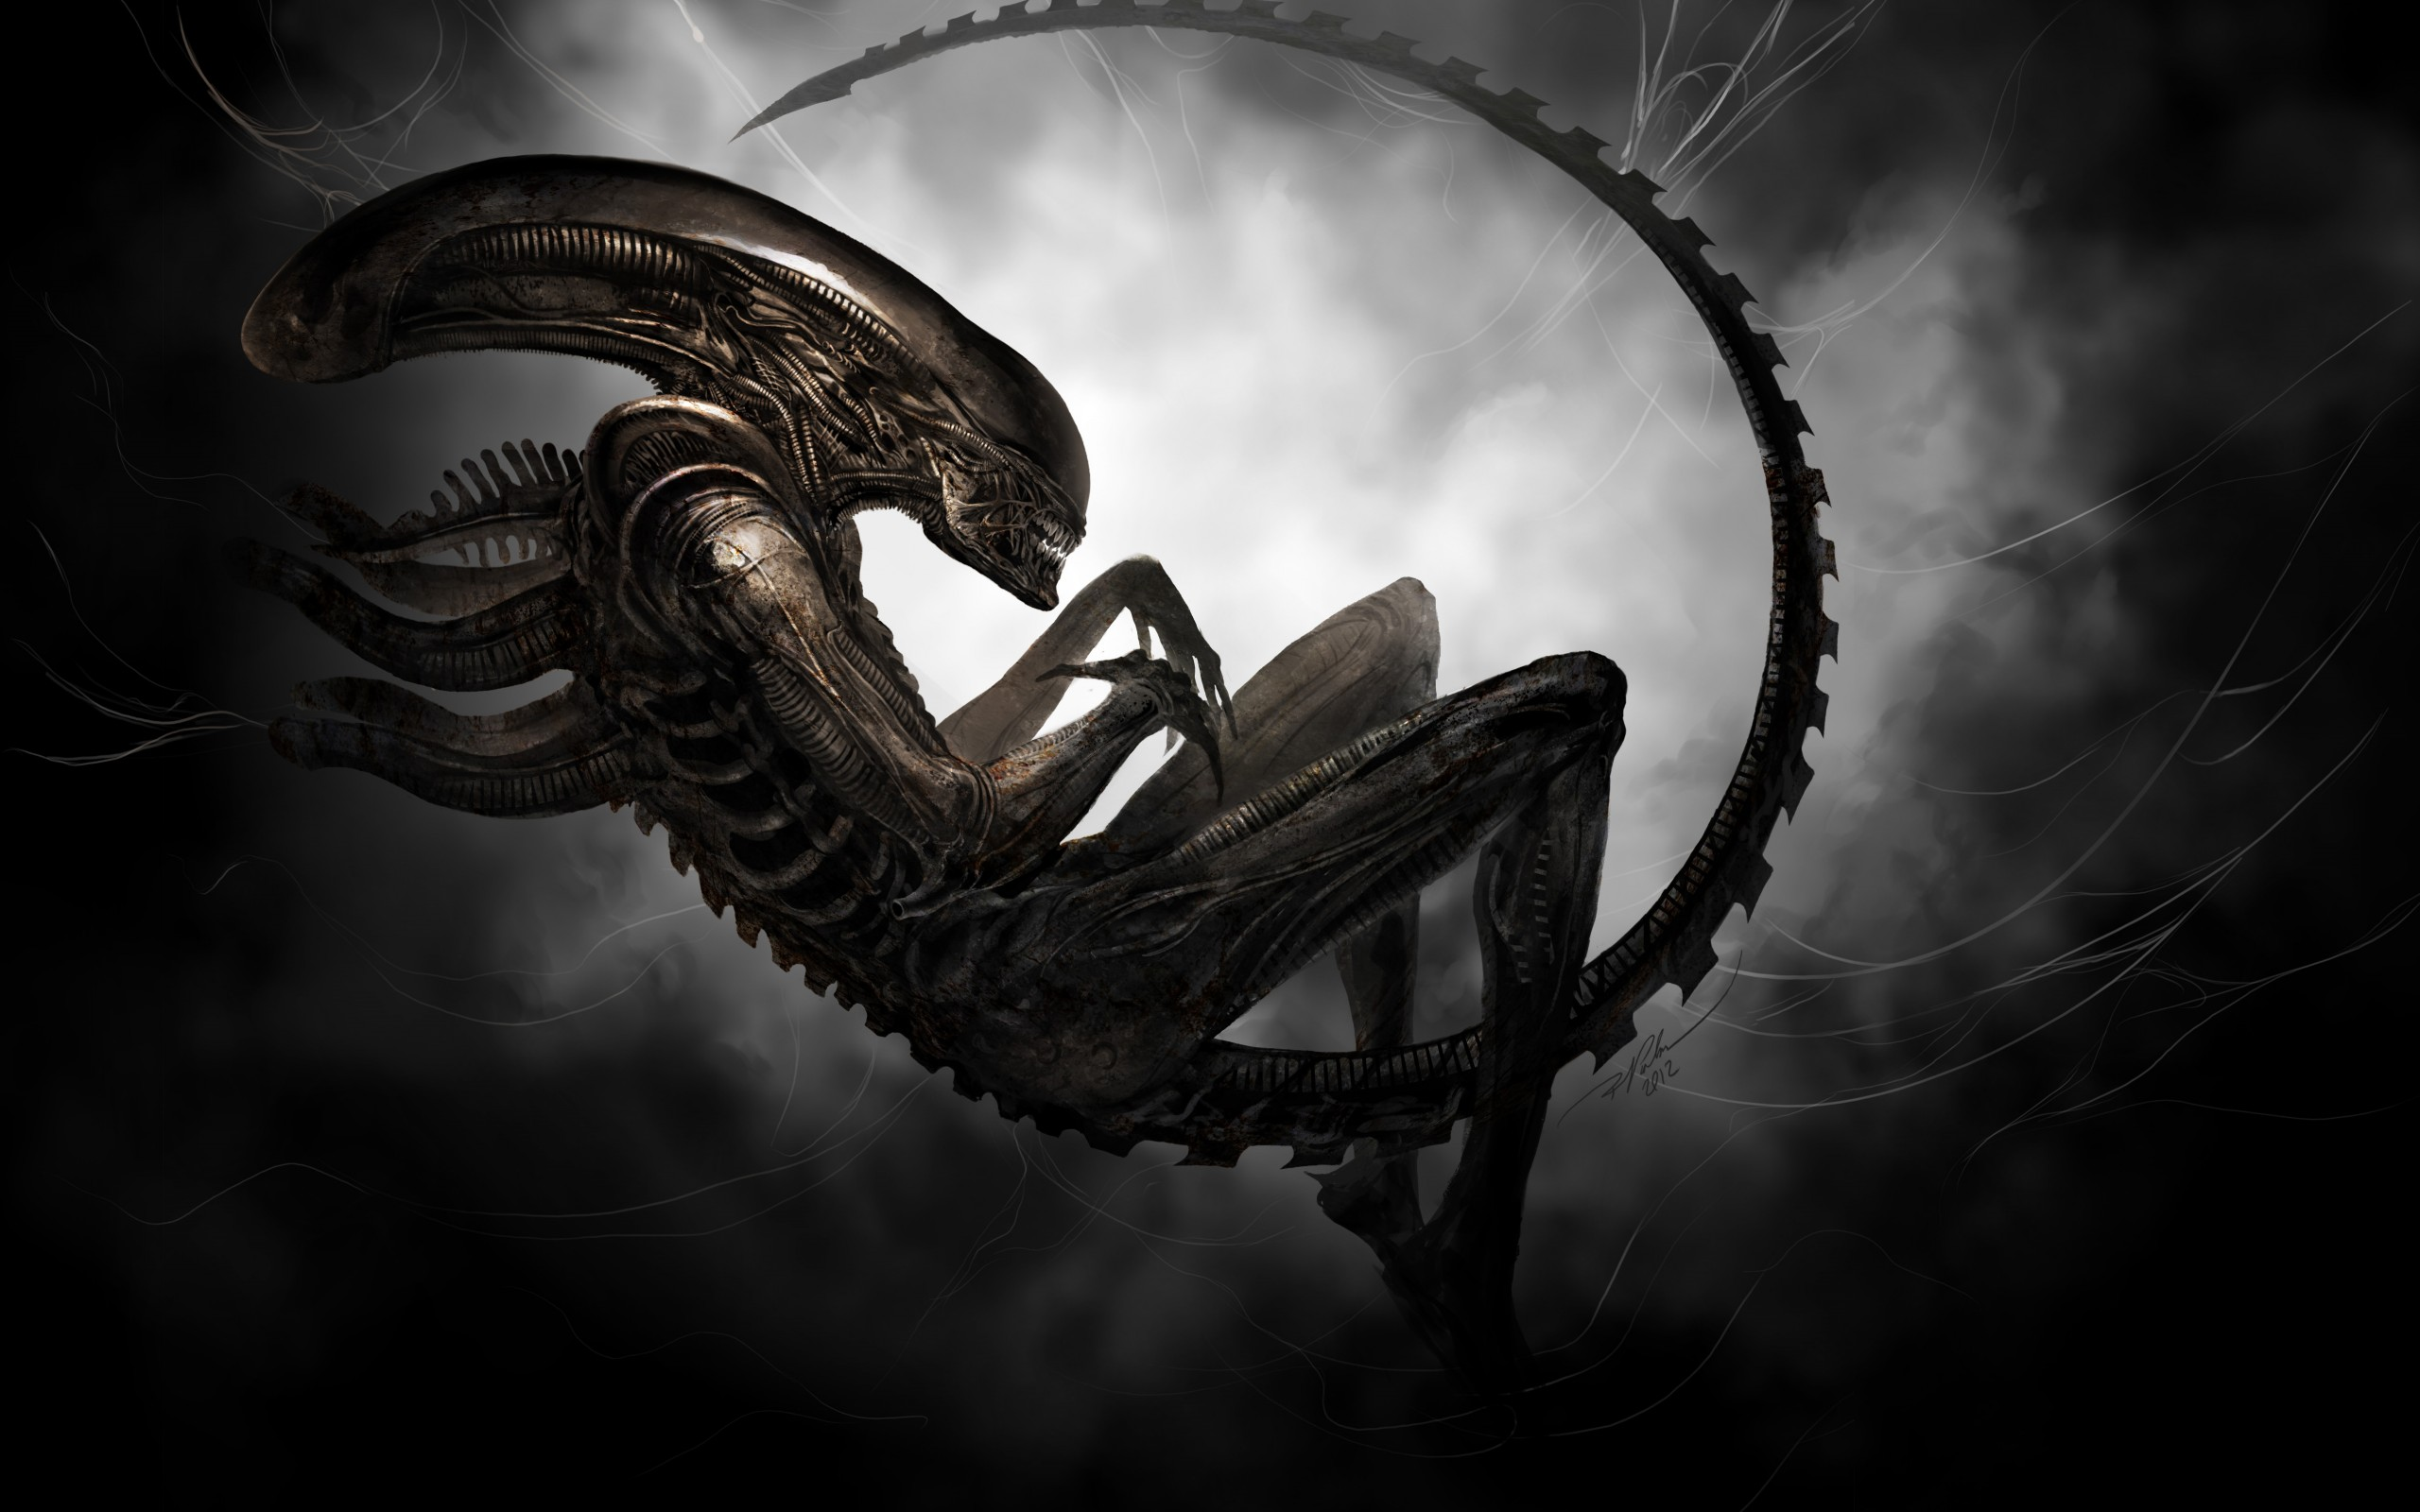 Alien aliens movies sci fi wallpaper 2560x1600 77929 2560x1600